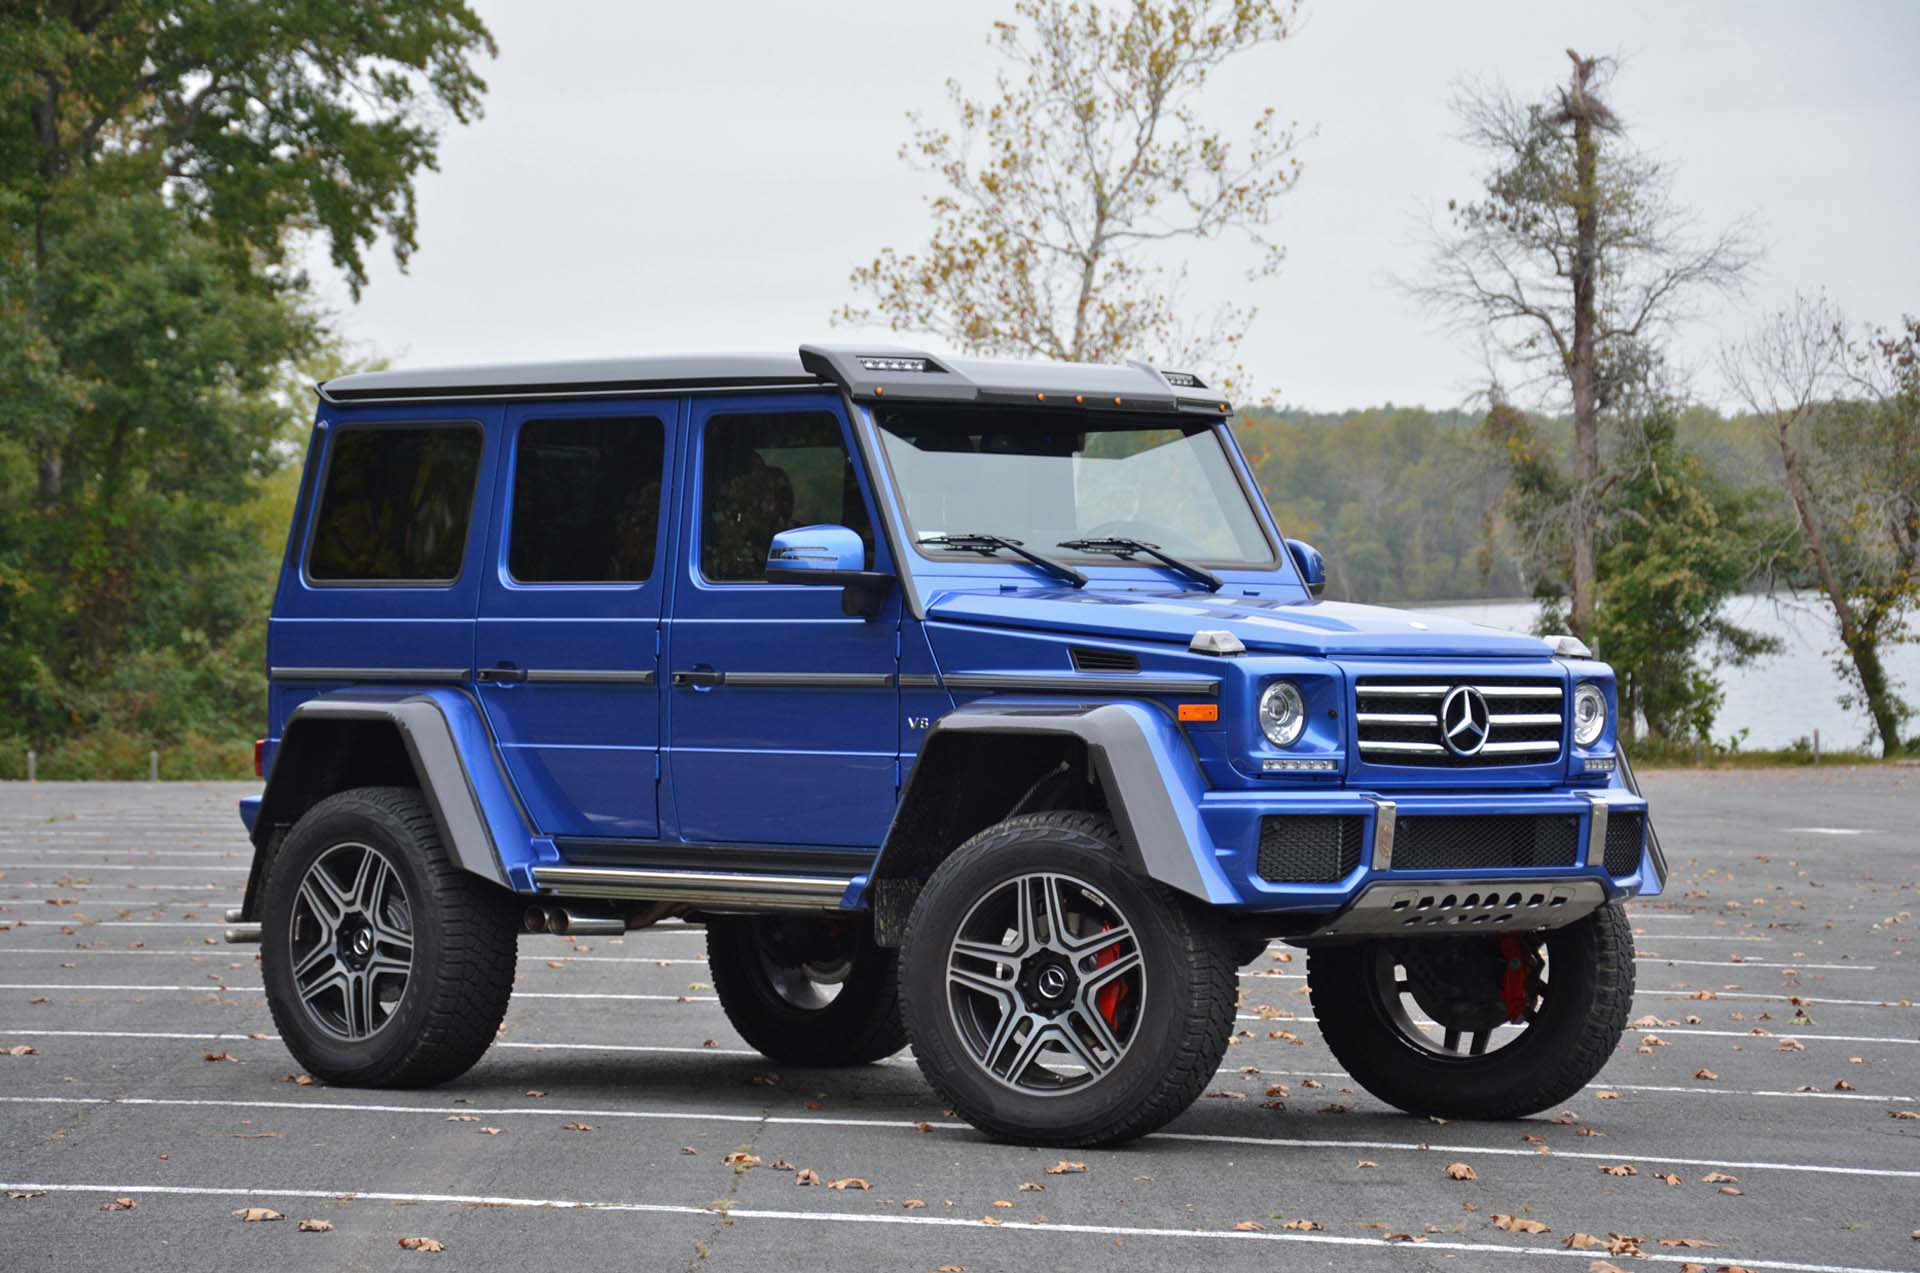 mercedes benz g550 4x4 squared review top tax bracket bruiser